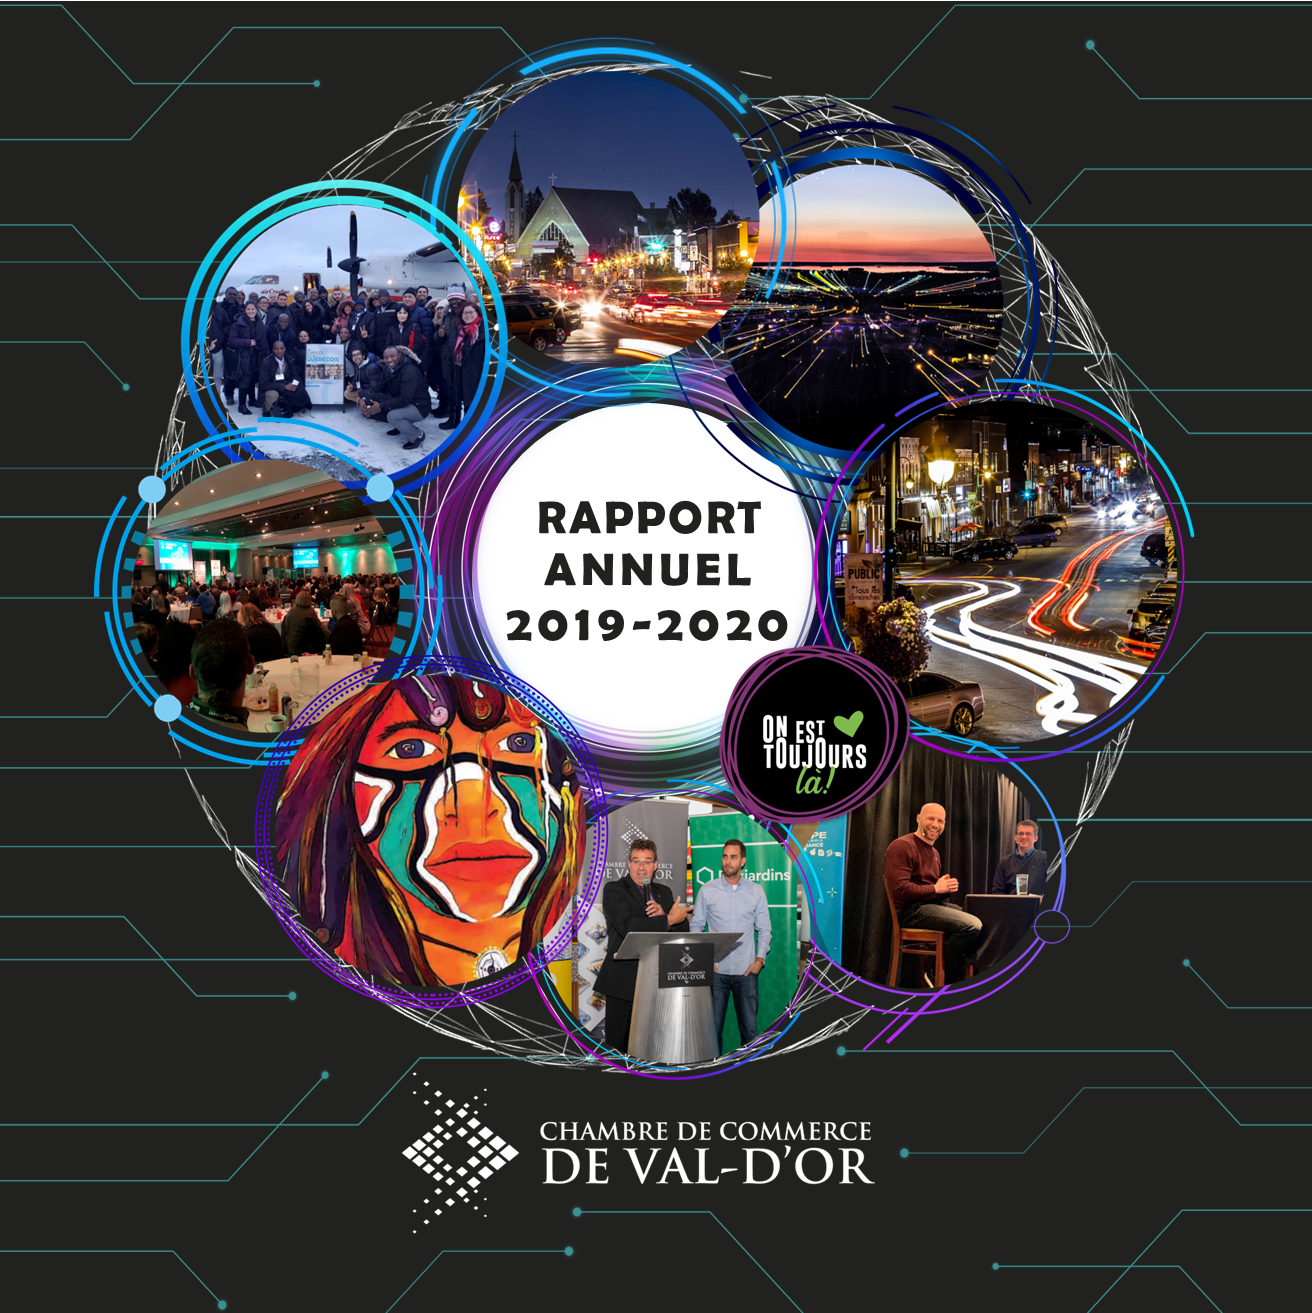 CCVD Rapport annuel 2019-2020